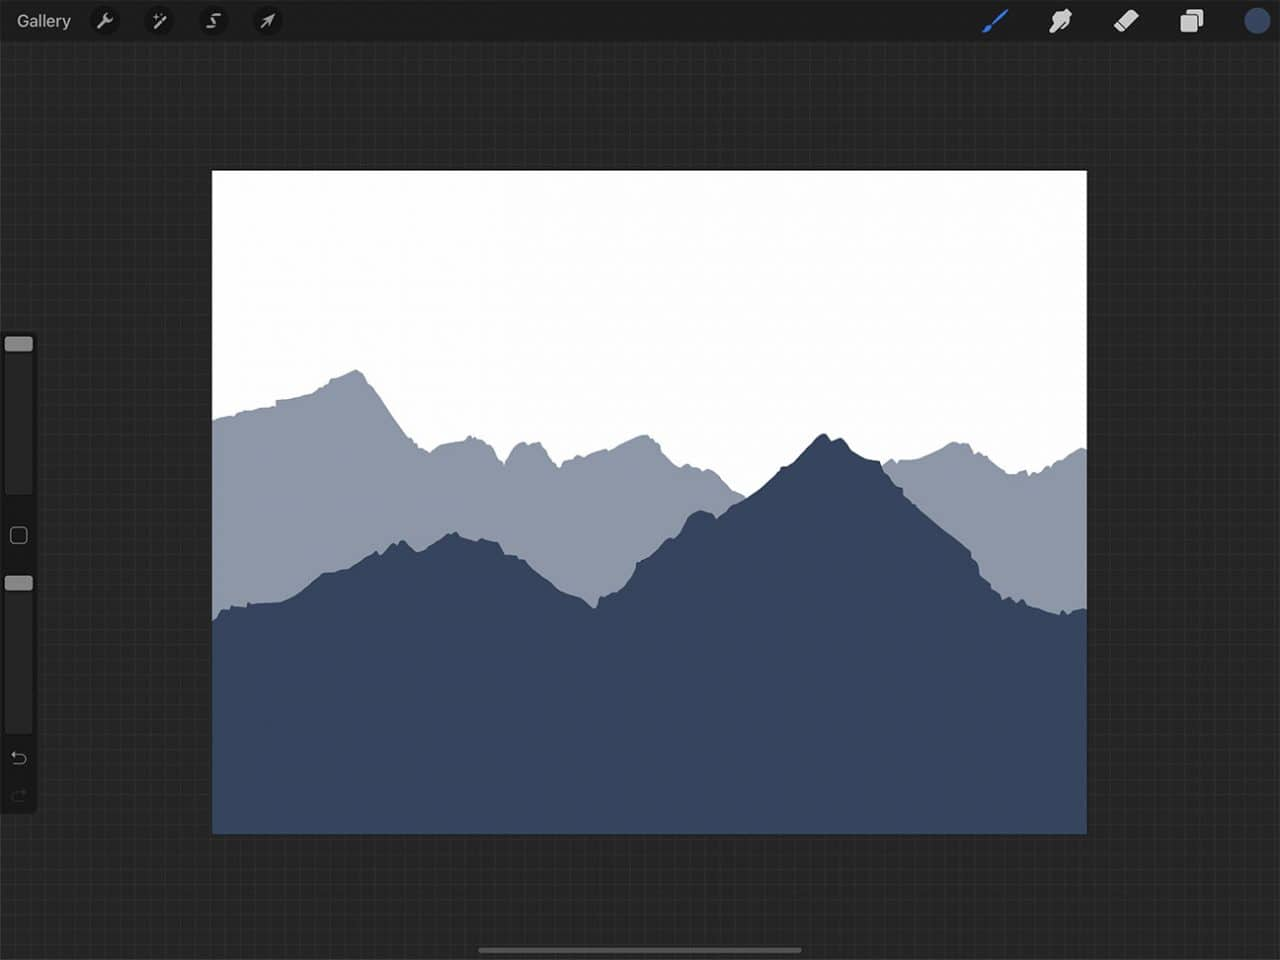 How to Draw Mountains: More faded tones give the impression of objects being further away